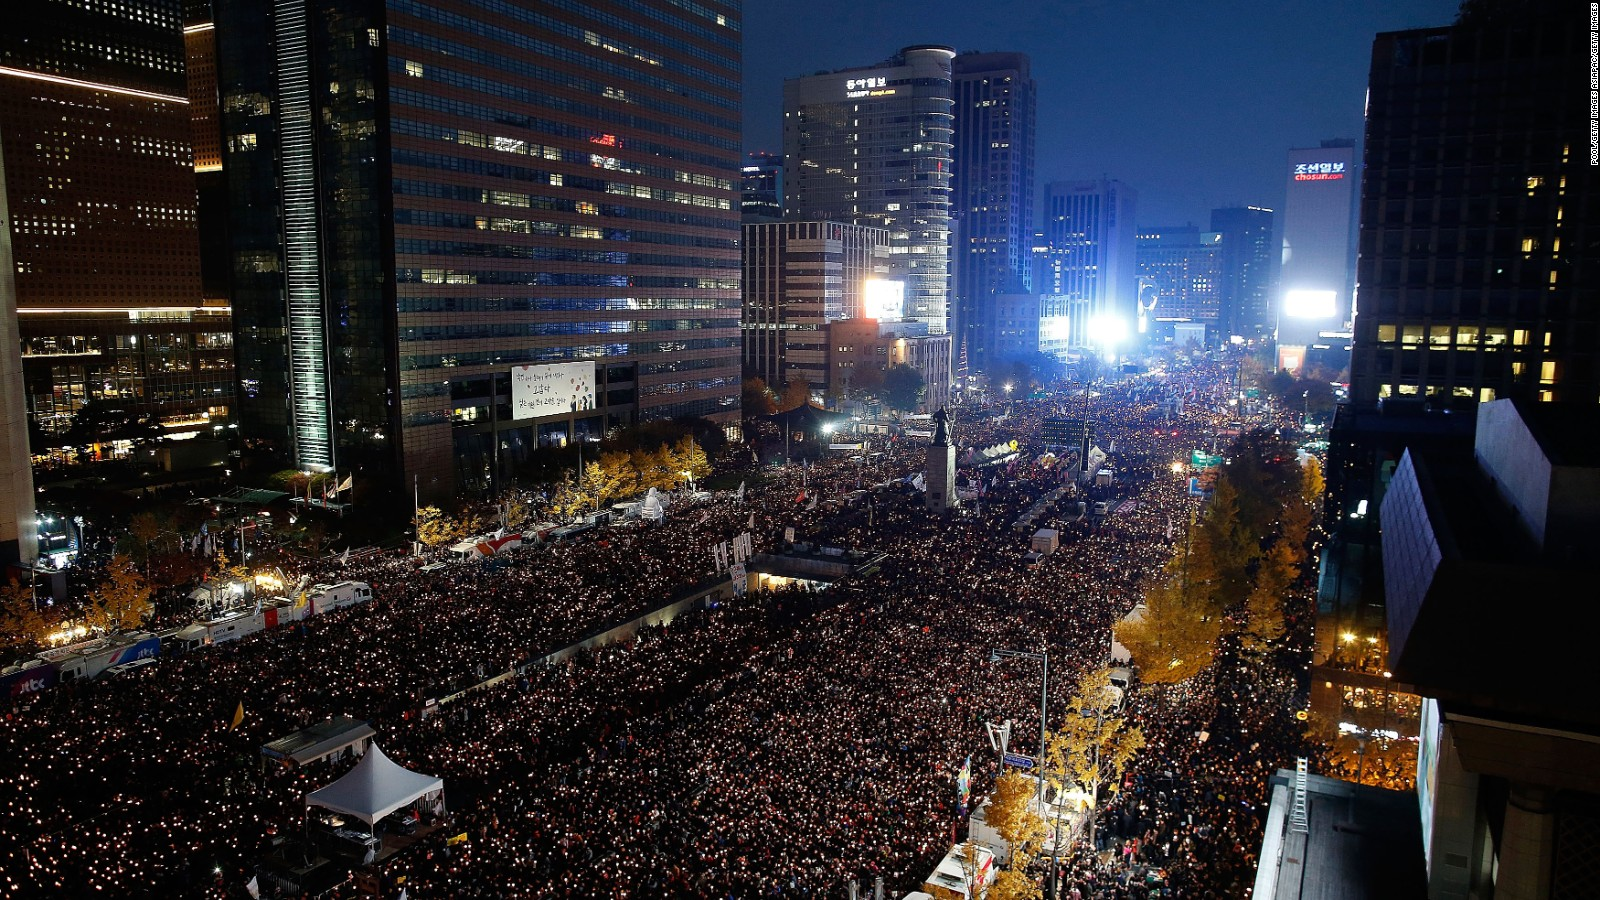 About South Korea Thousands Protest Against South Korean President